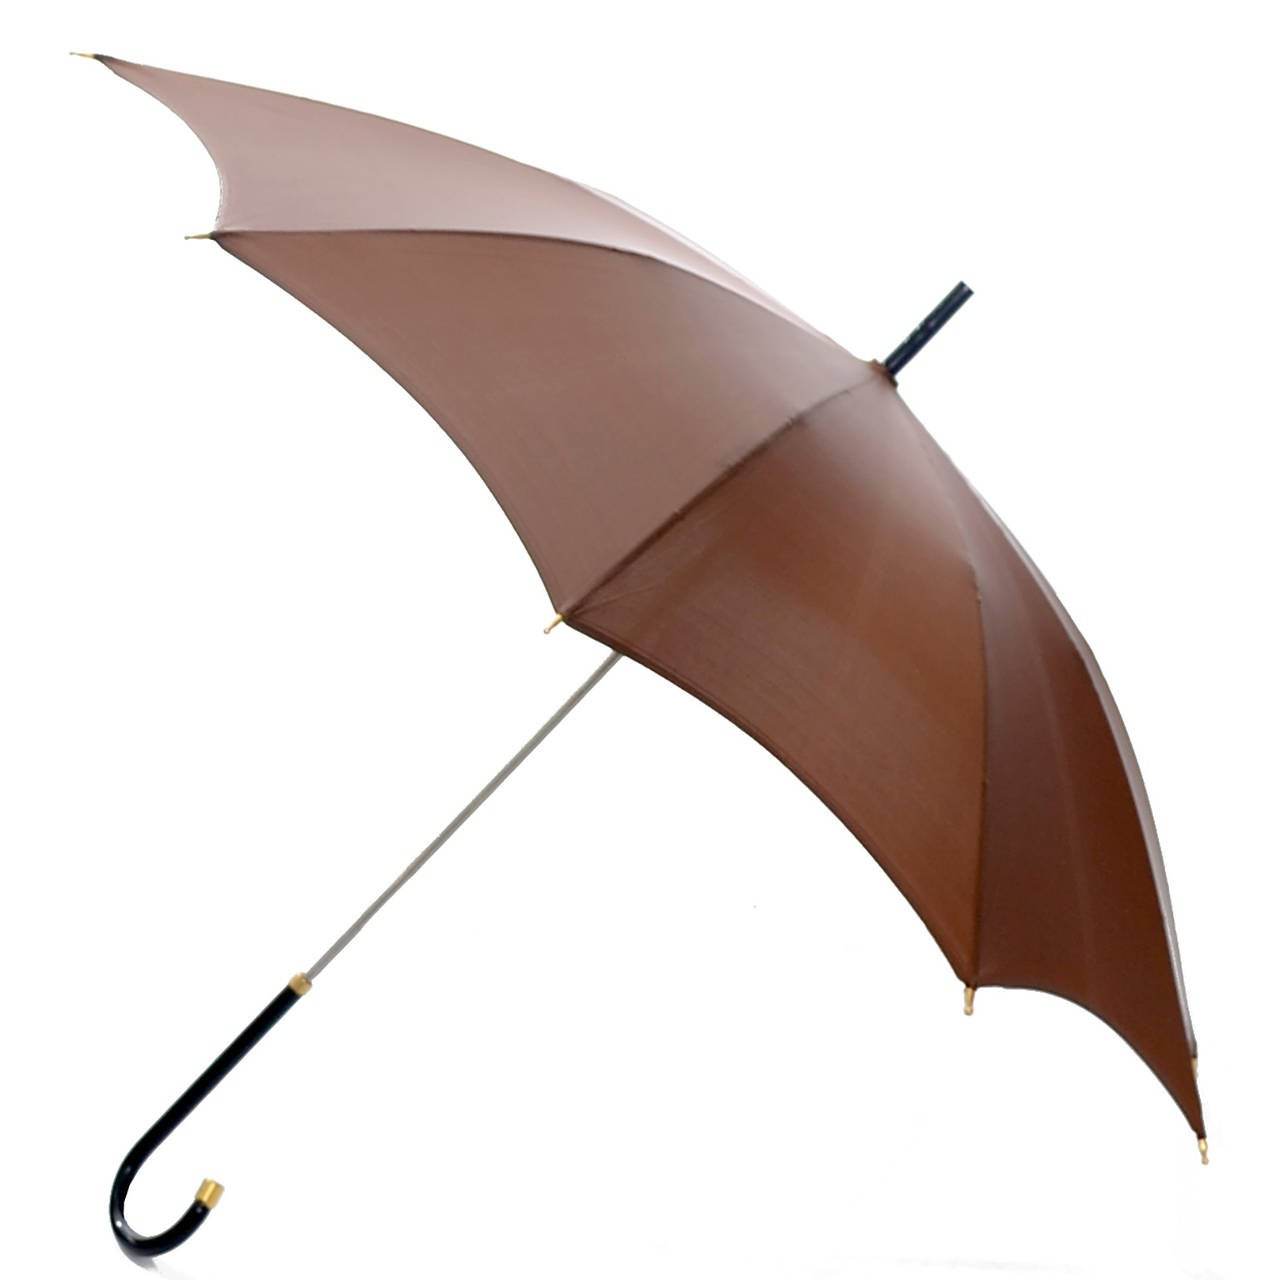 Dead Stock New Vintage Gucci Umbrella 1970s Brown Italy In New never worn Condition For Sale In Portland, OR